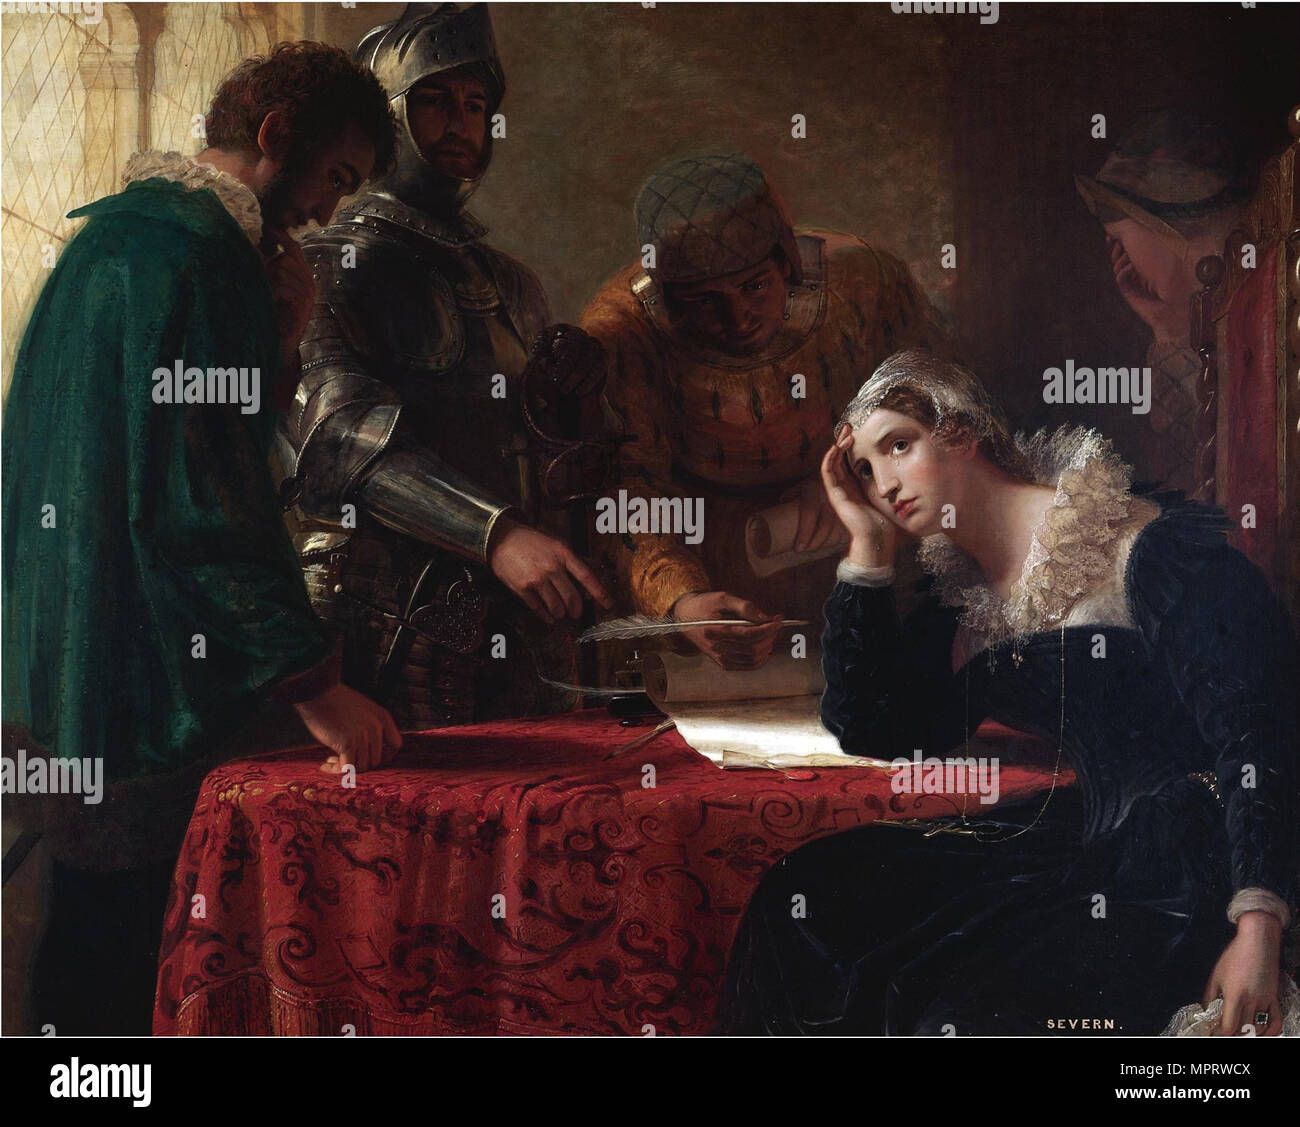 The Abdication of Mary, Queen of Scots. - Stock Image